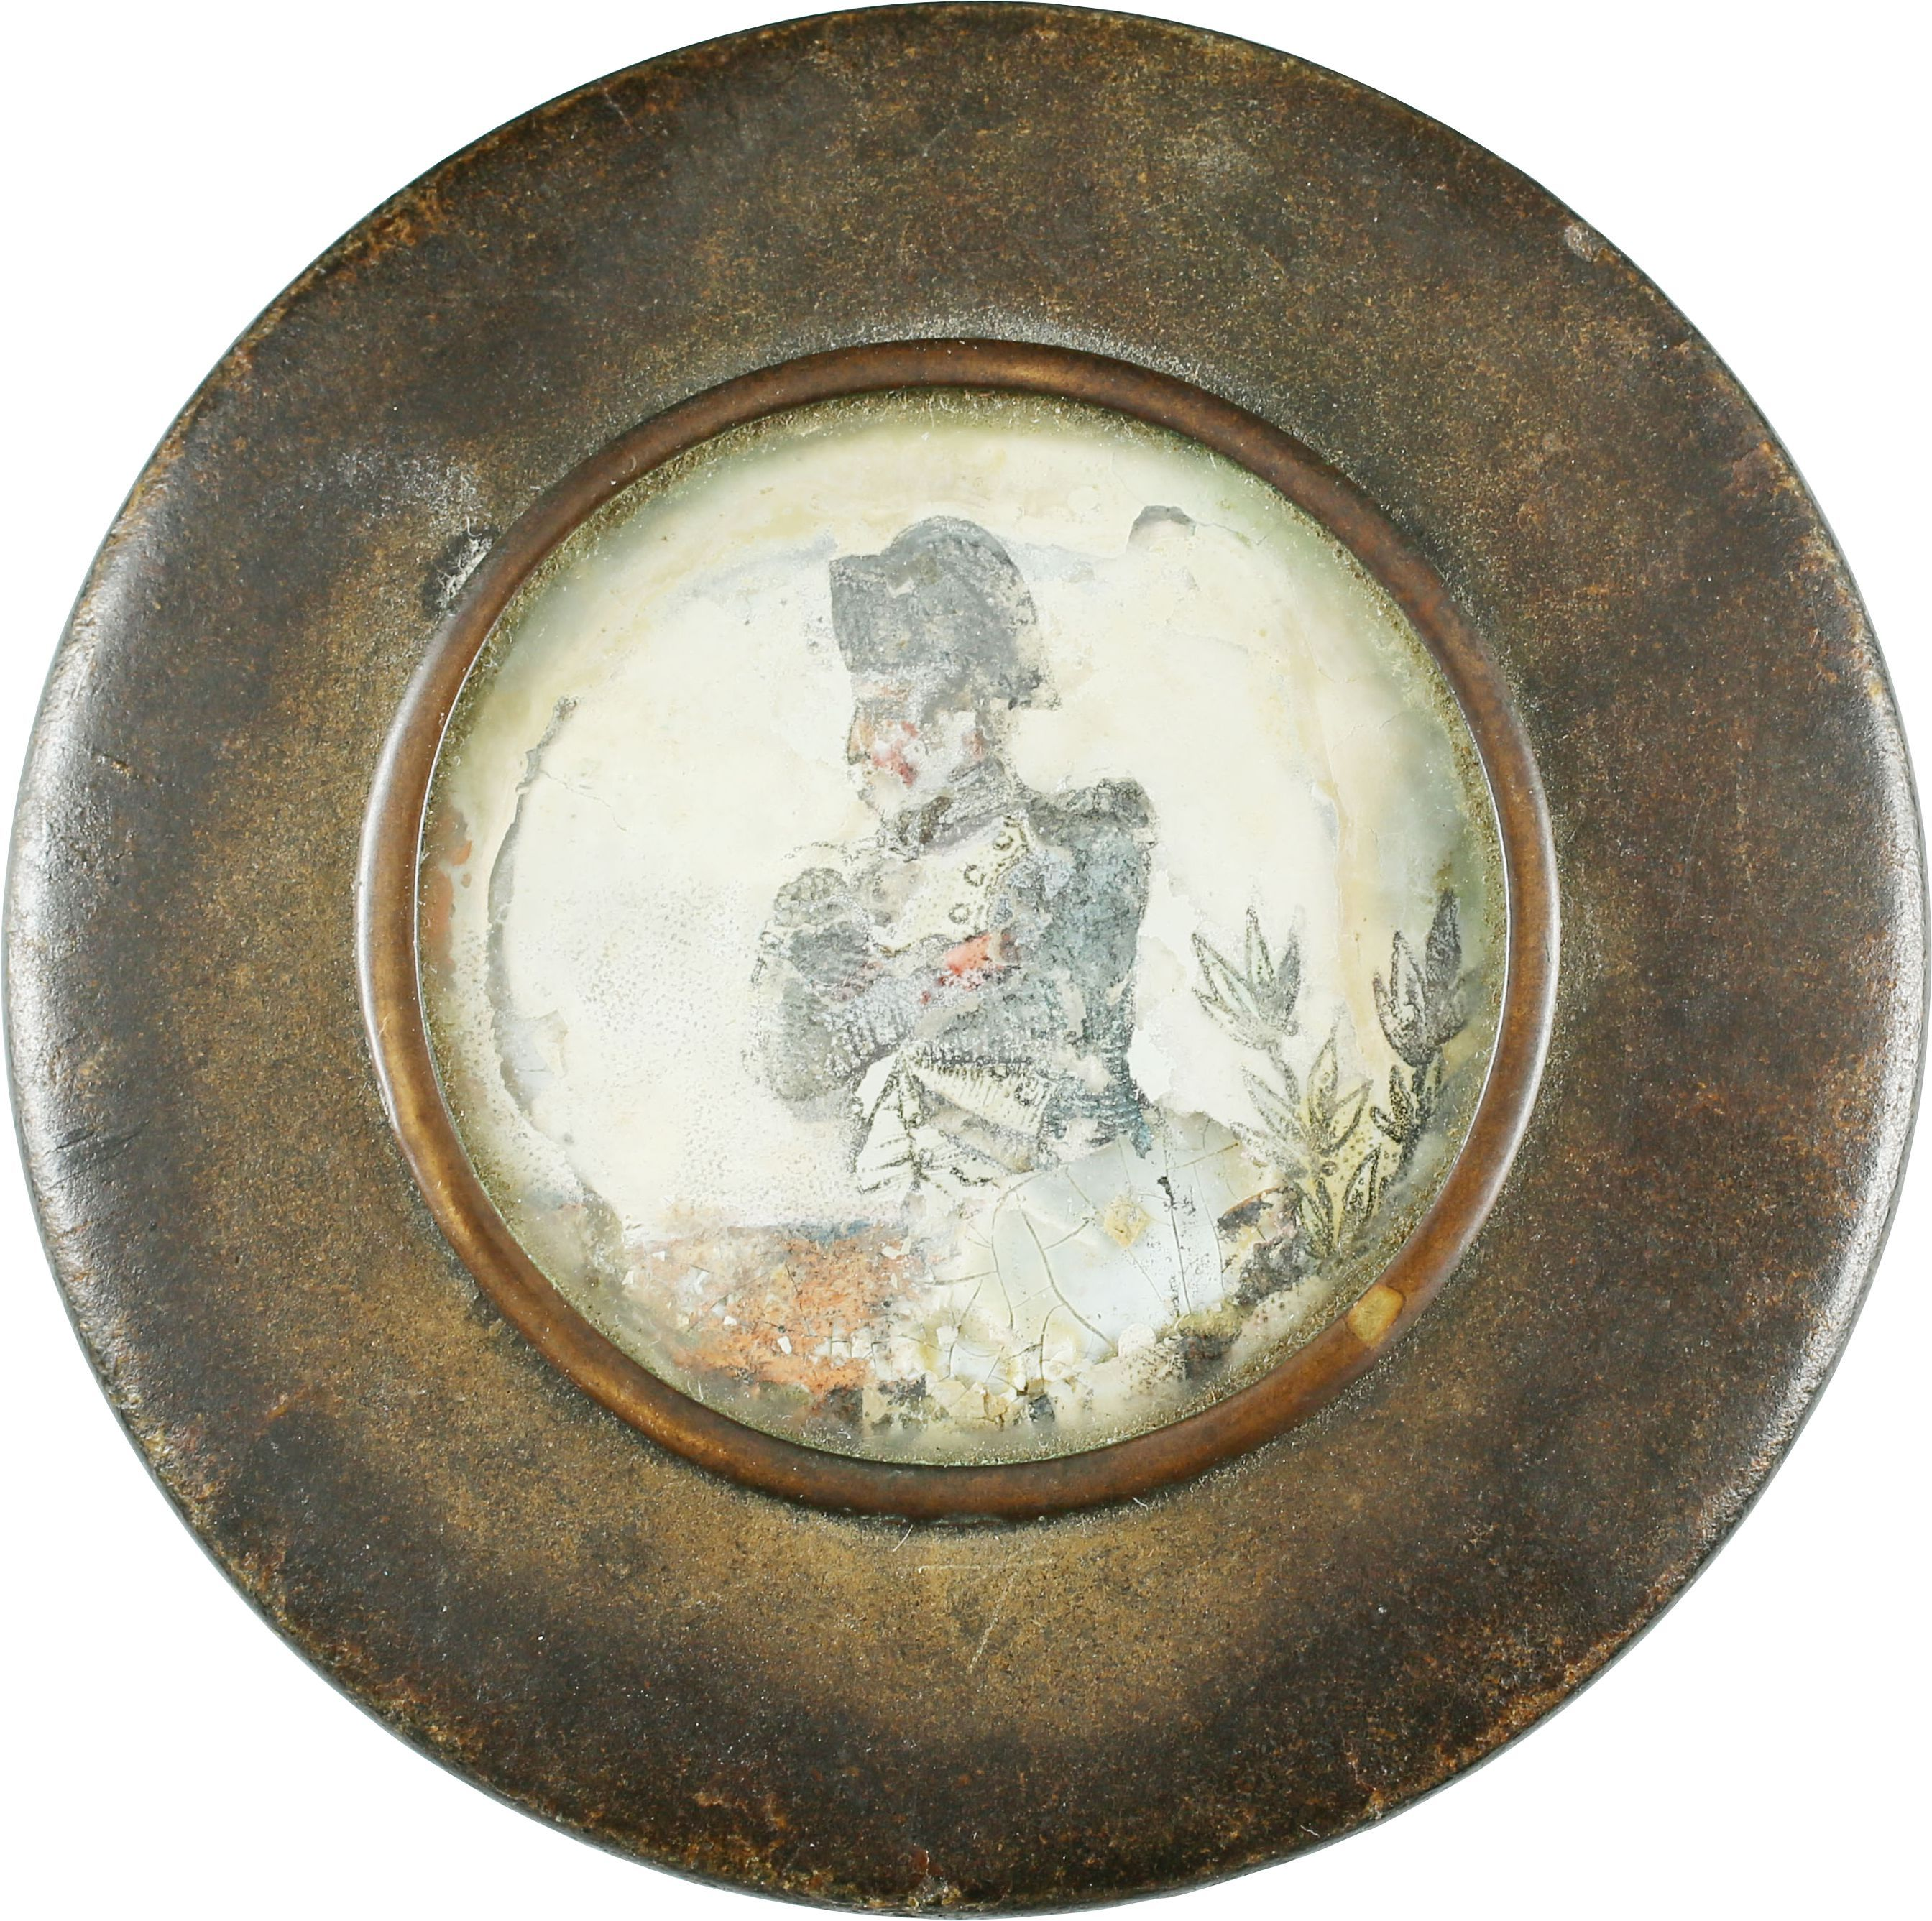 Admiral Nelson Portrait On English Snuff Box - Product